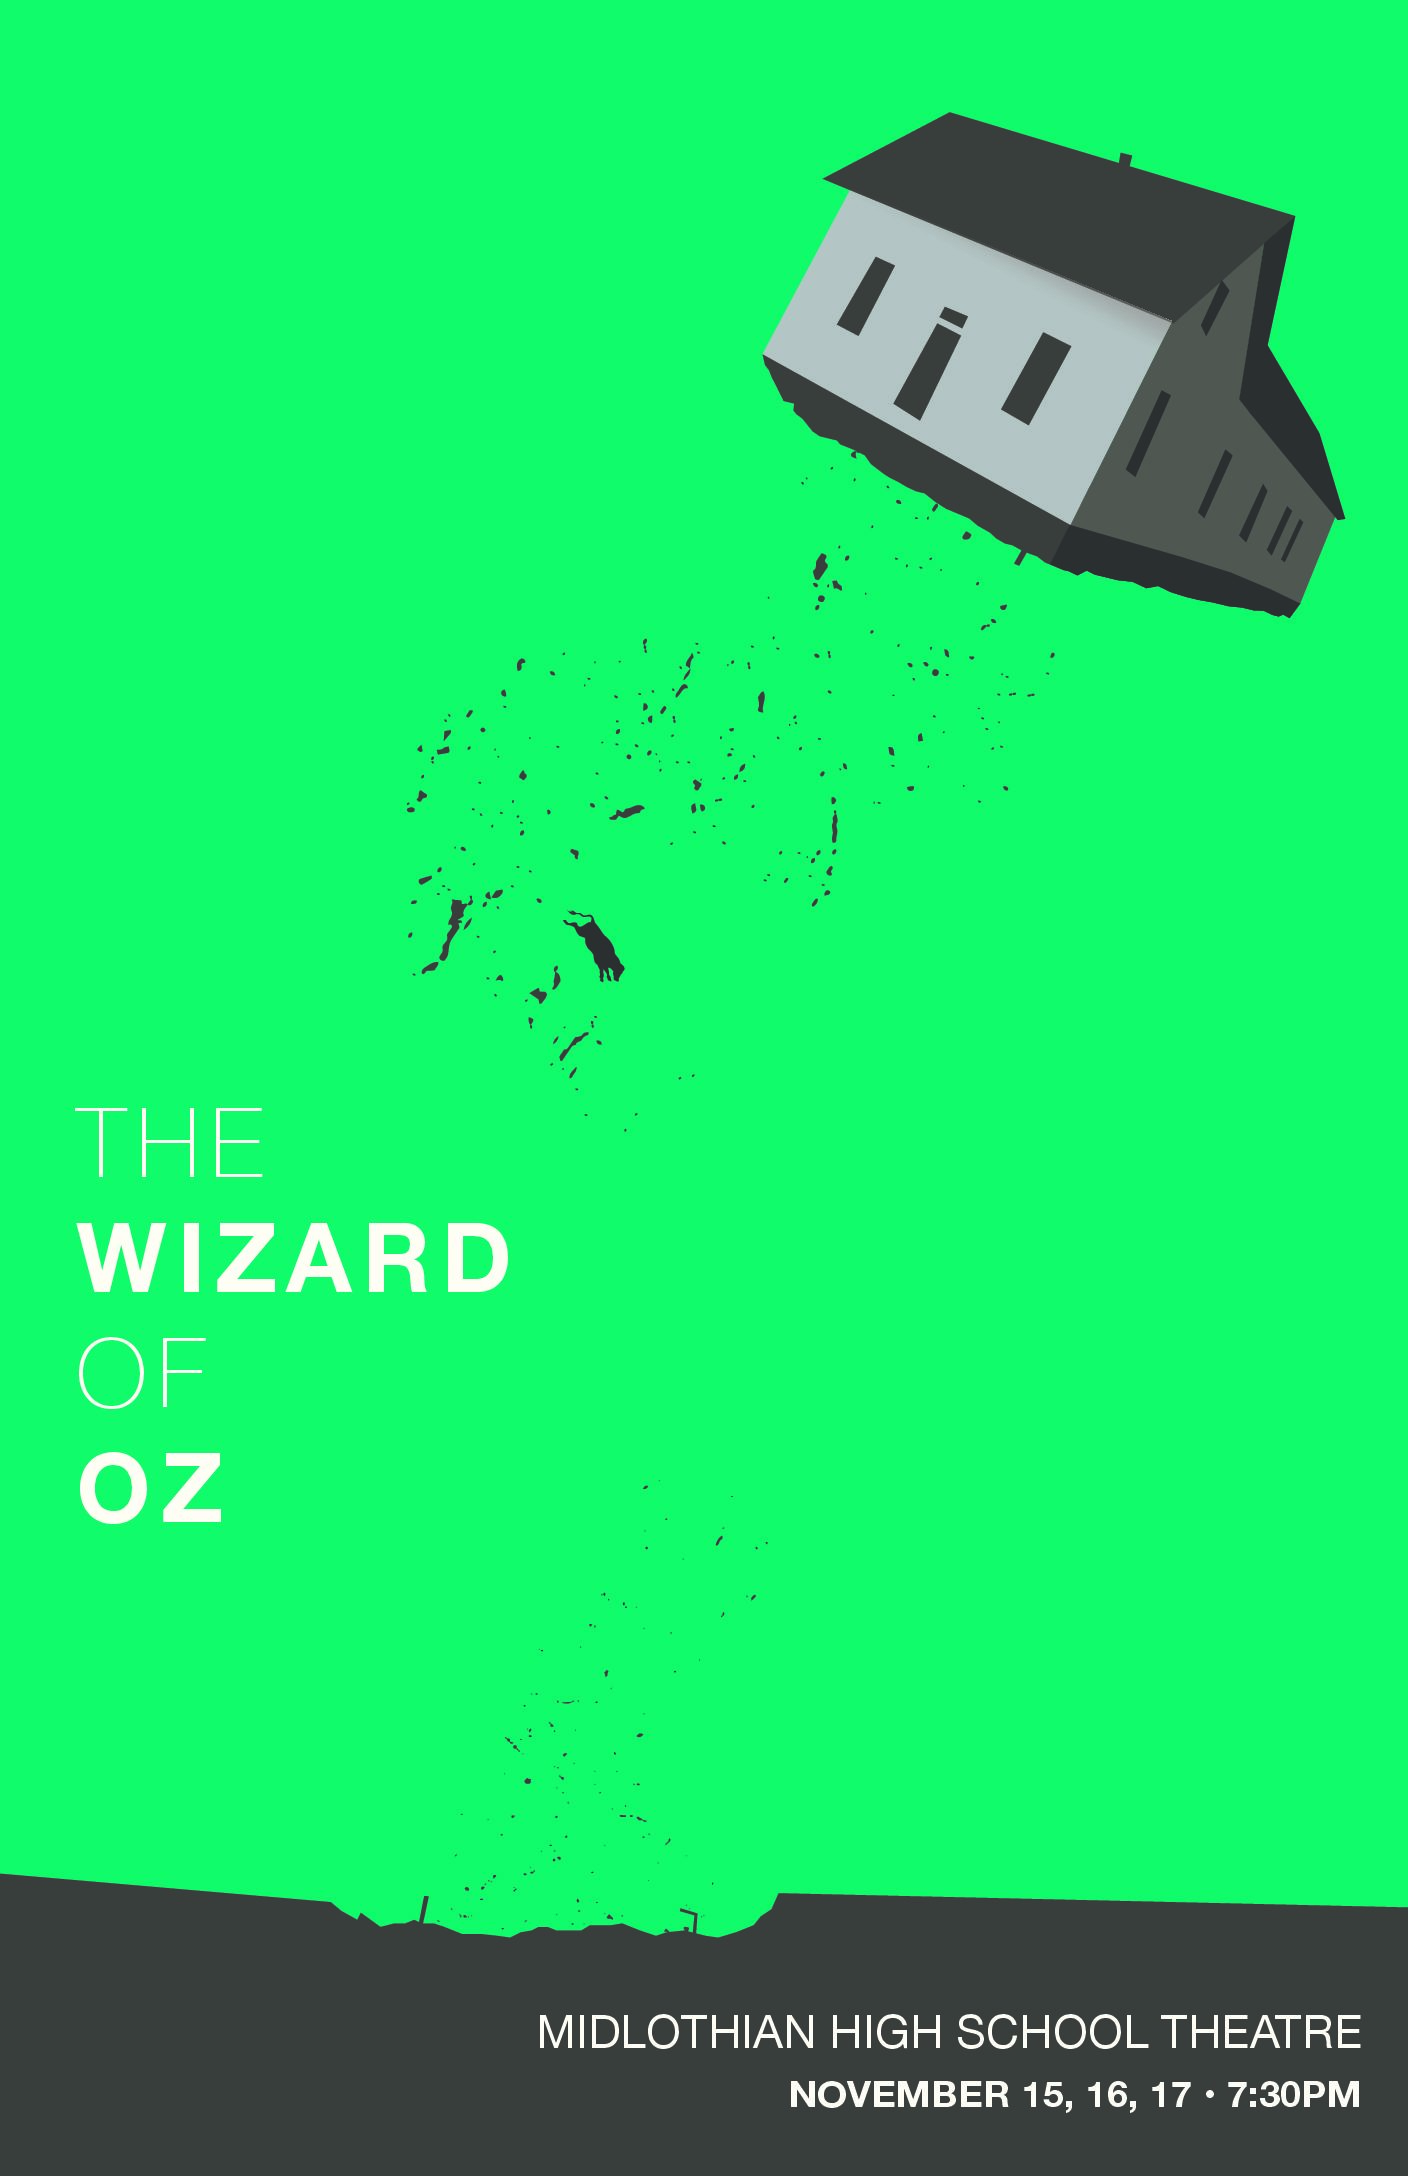 Experience the Wizard of Oz!